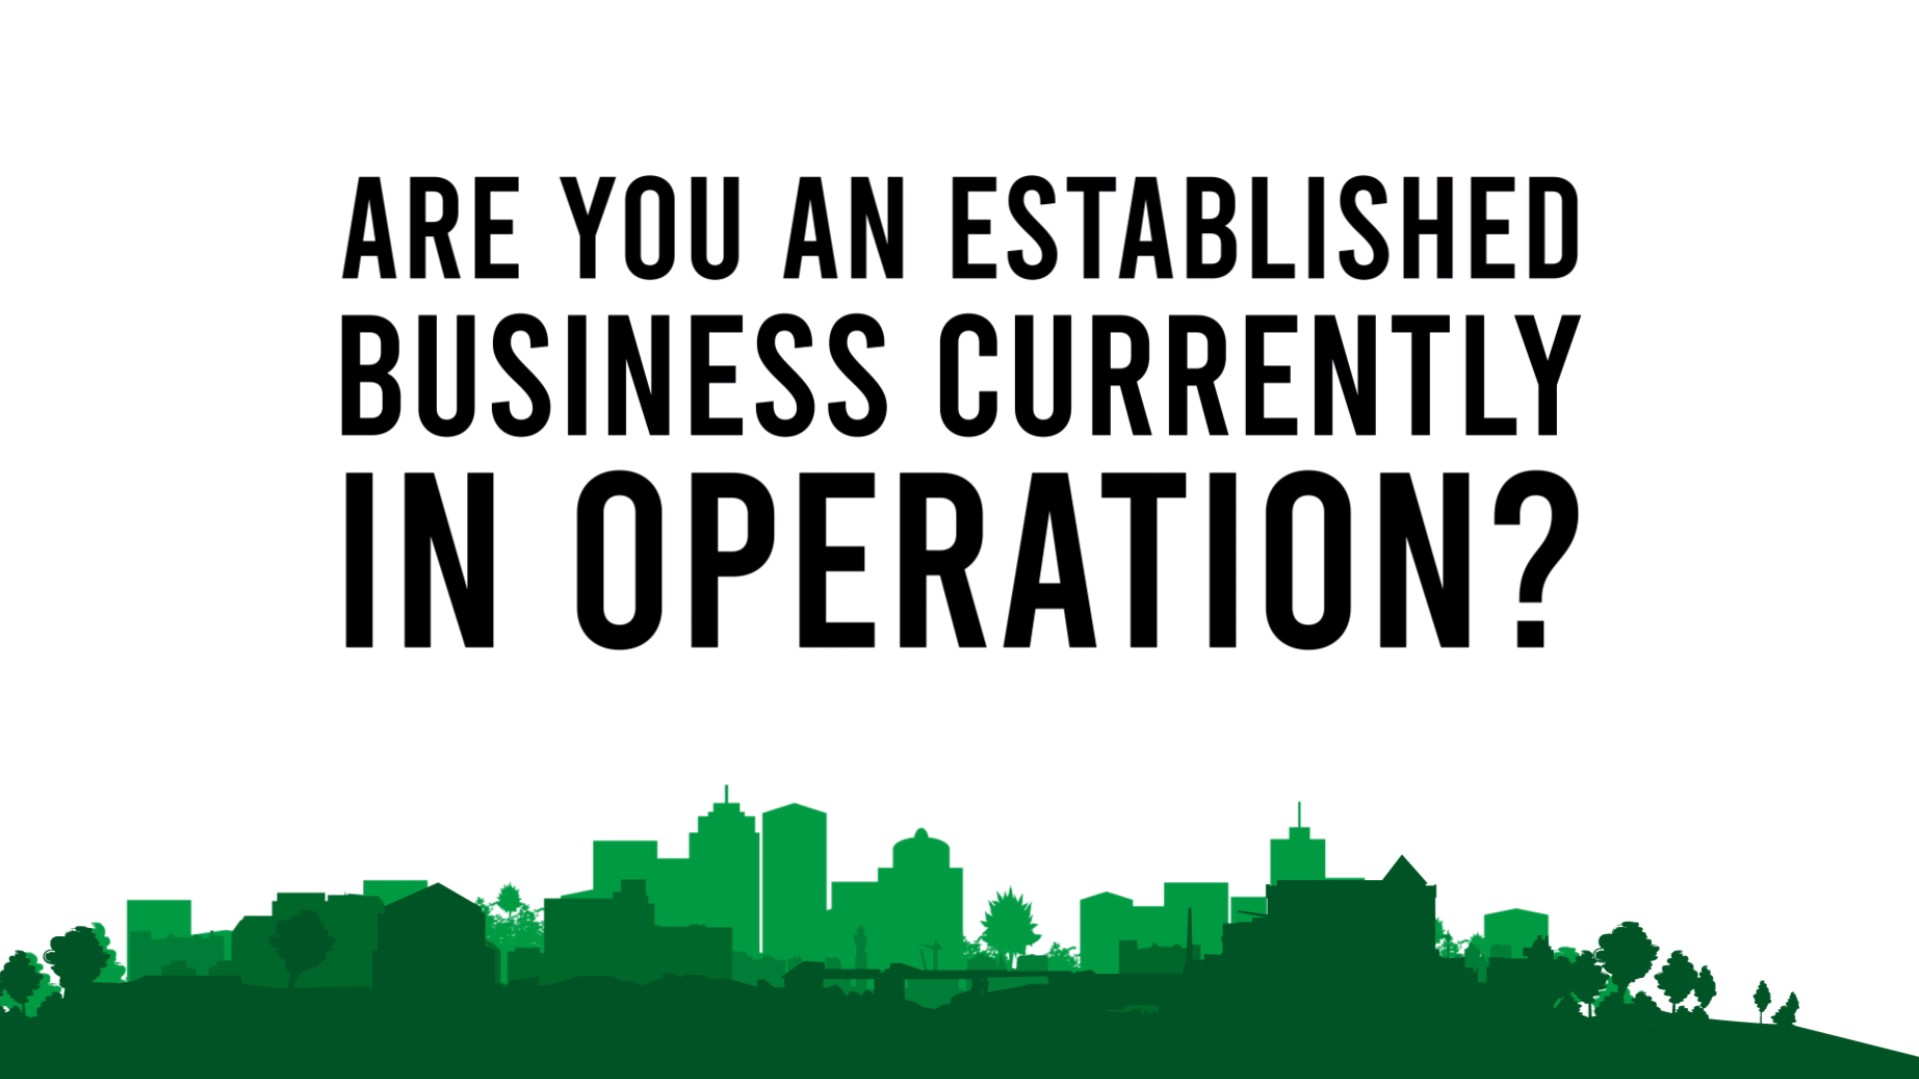 Are you an established business currently in operation?